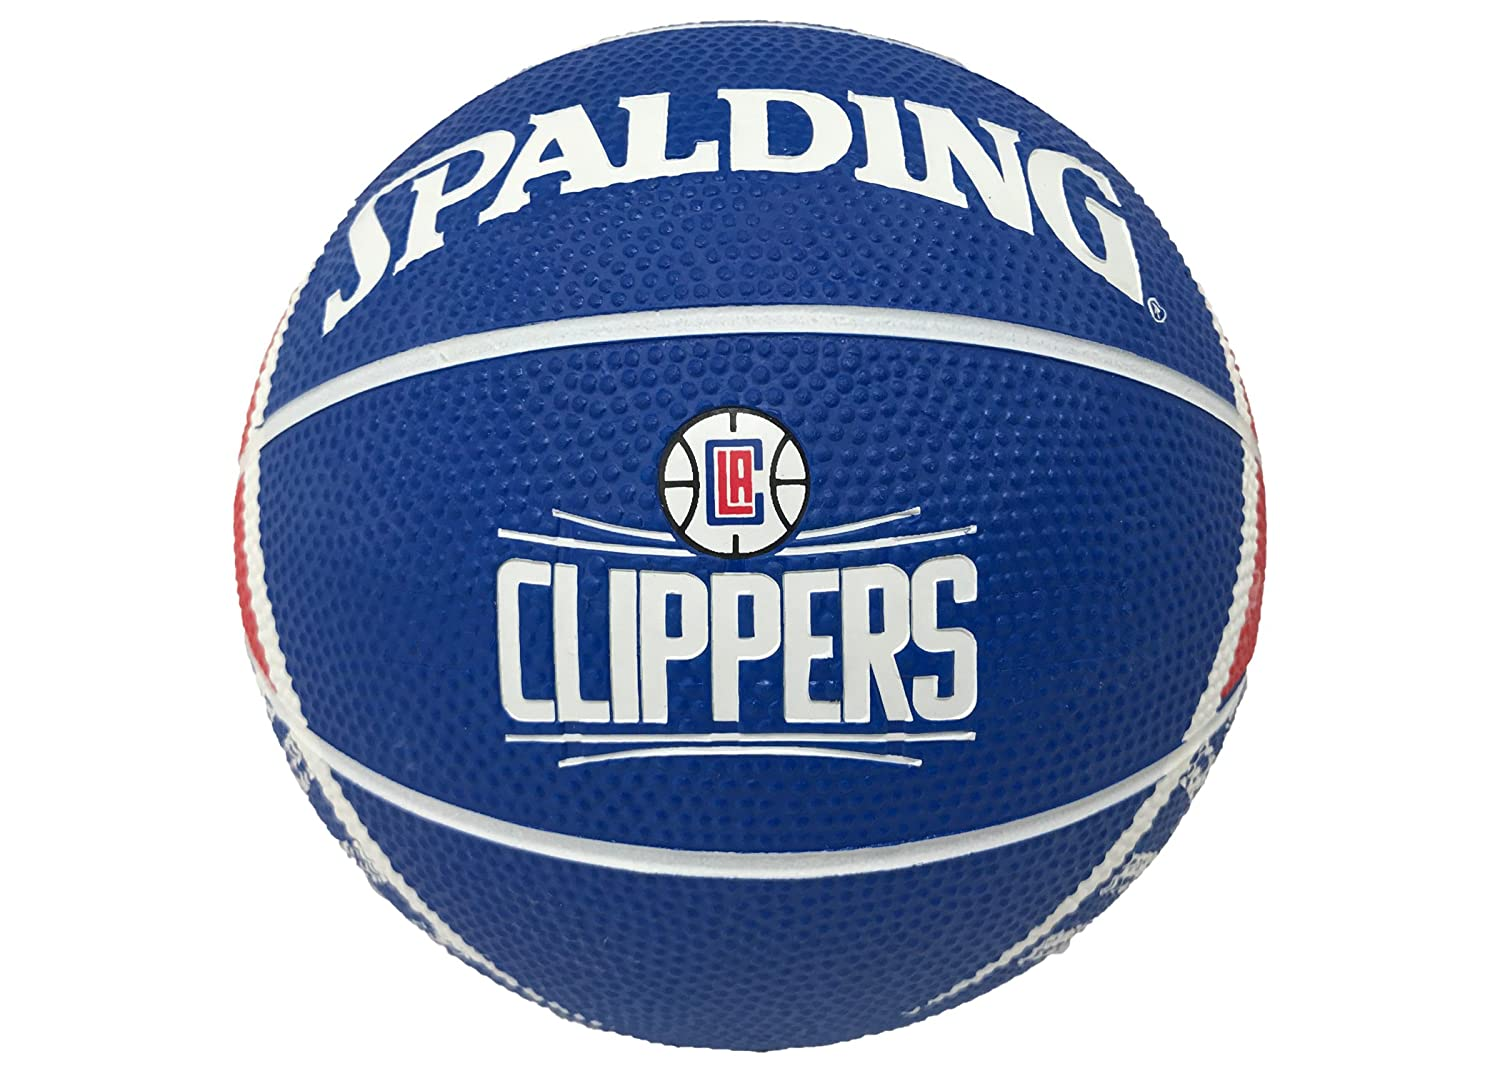 Game Master NBA Los Angeles Clippers Mini Basketball 7-inches